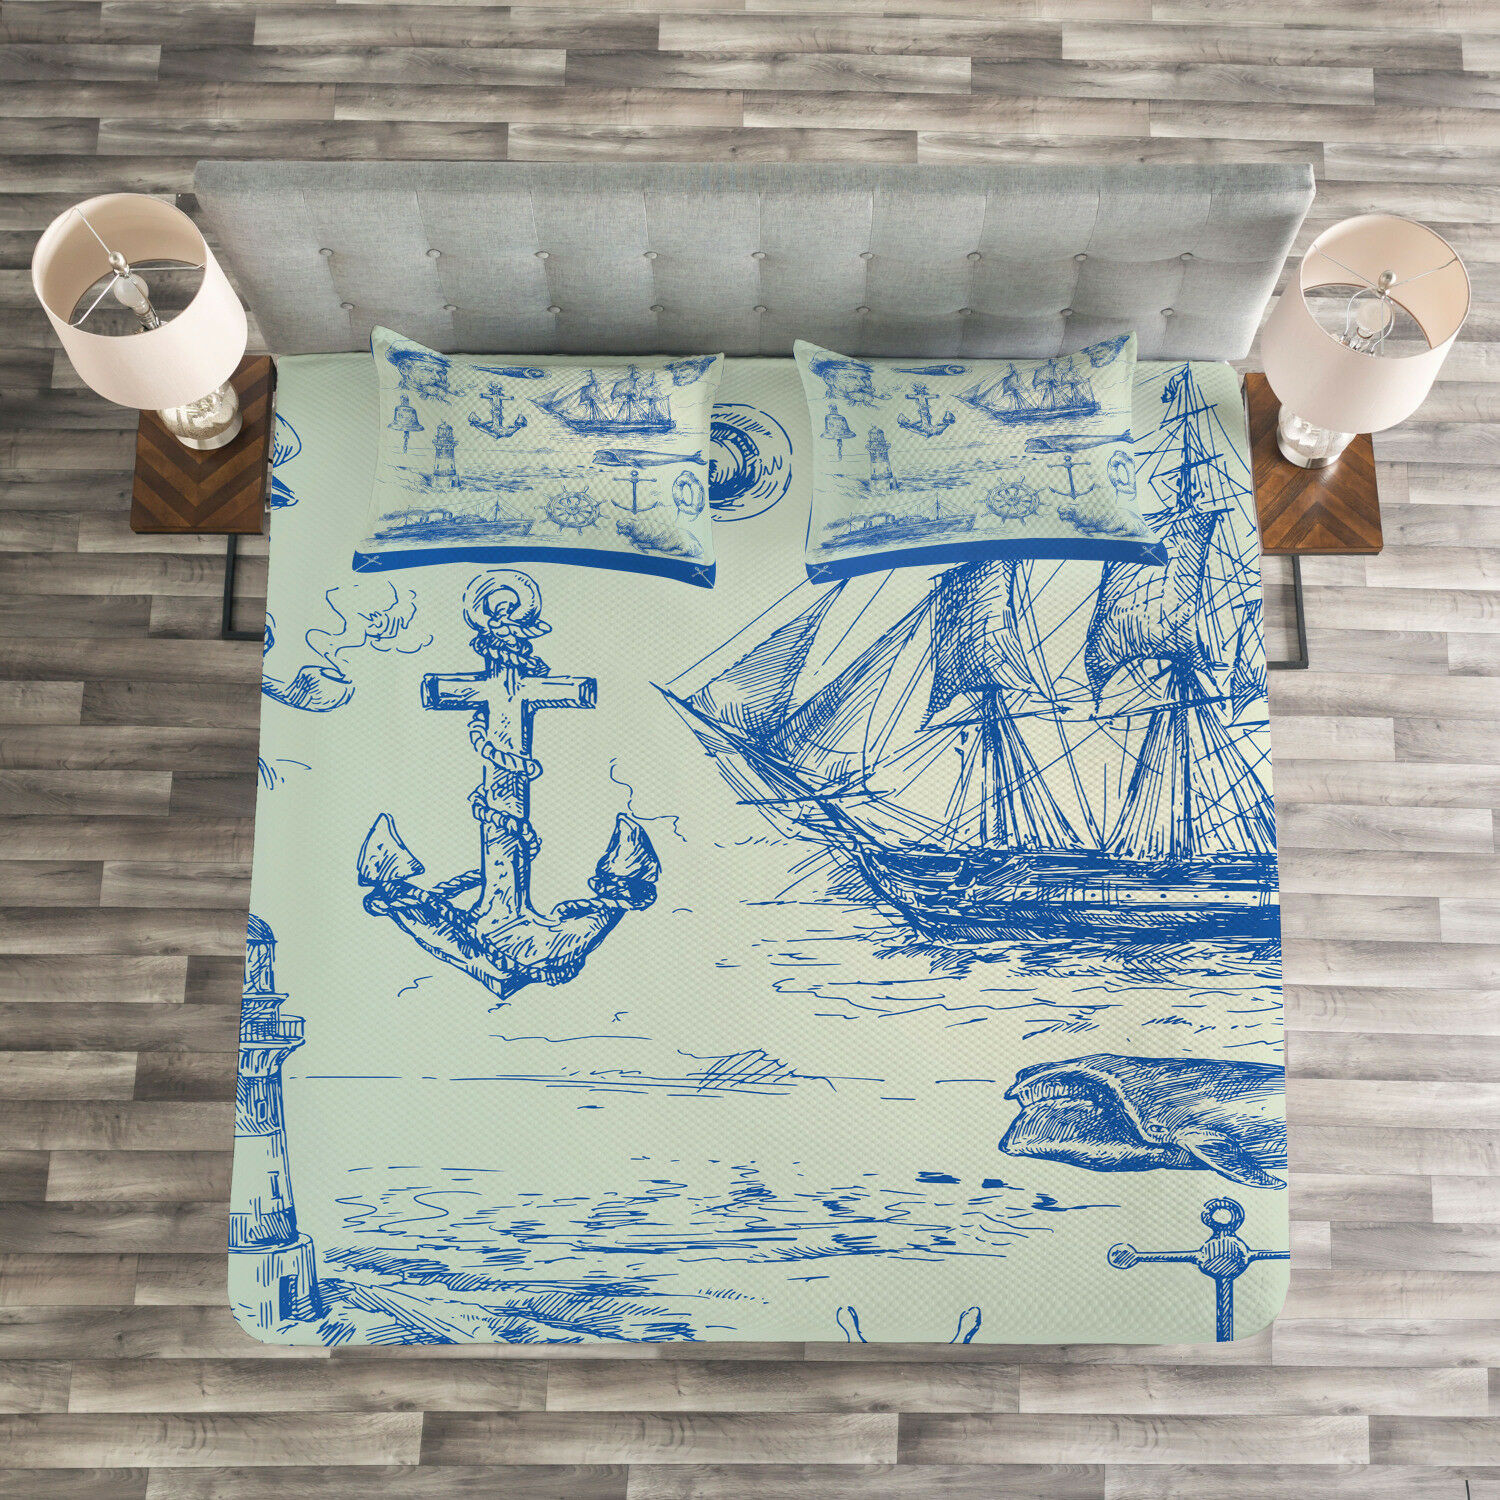 Fishing Quilted Bedspread & Pillow Shams Set, Whale Wheel Sketch Print